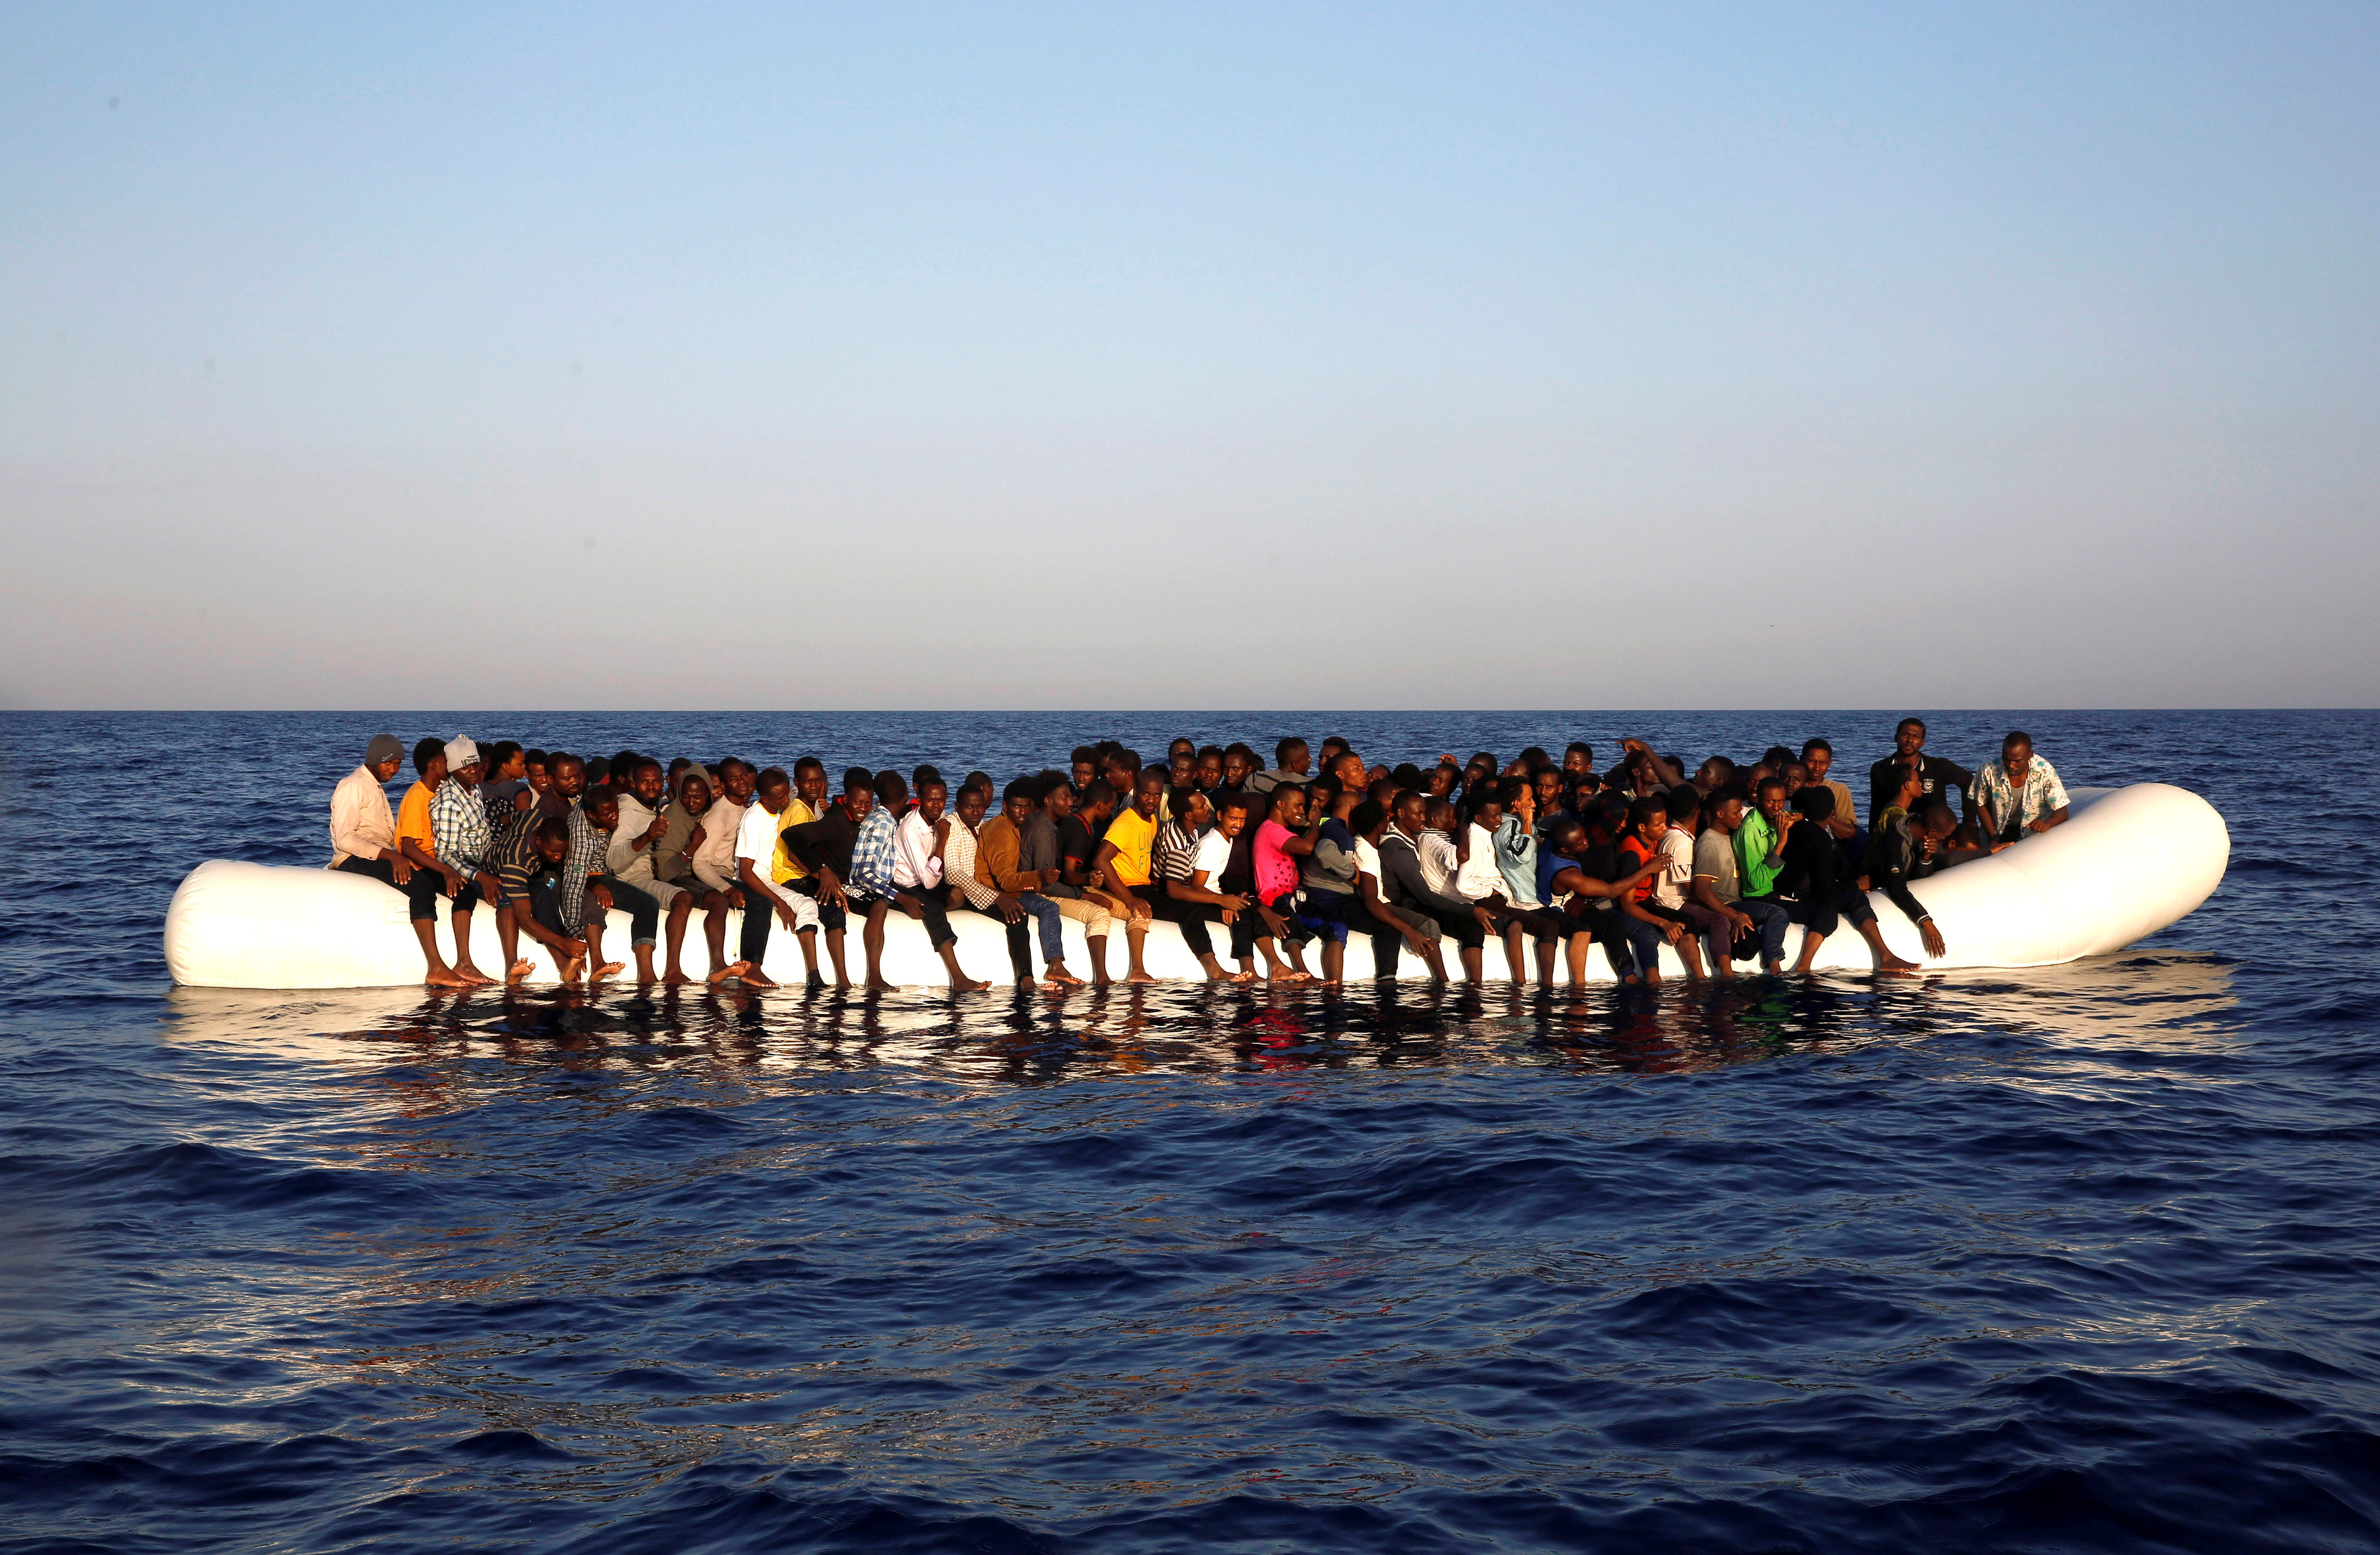 A dinghy overcrowded by African migrants is seen drifting off the Libyan coast in Mediterranean Sea August 20, 2016.  REUTERS/Giorgos Moutafis     TPX IMAGES OF THE DAY      - RTX2M8G7